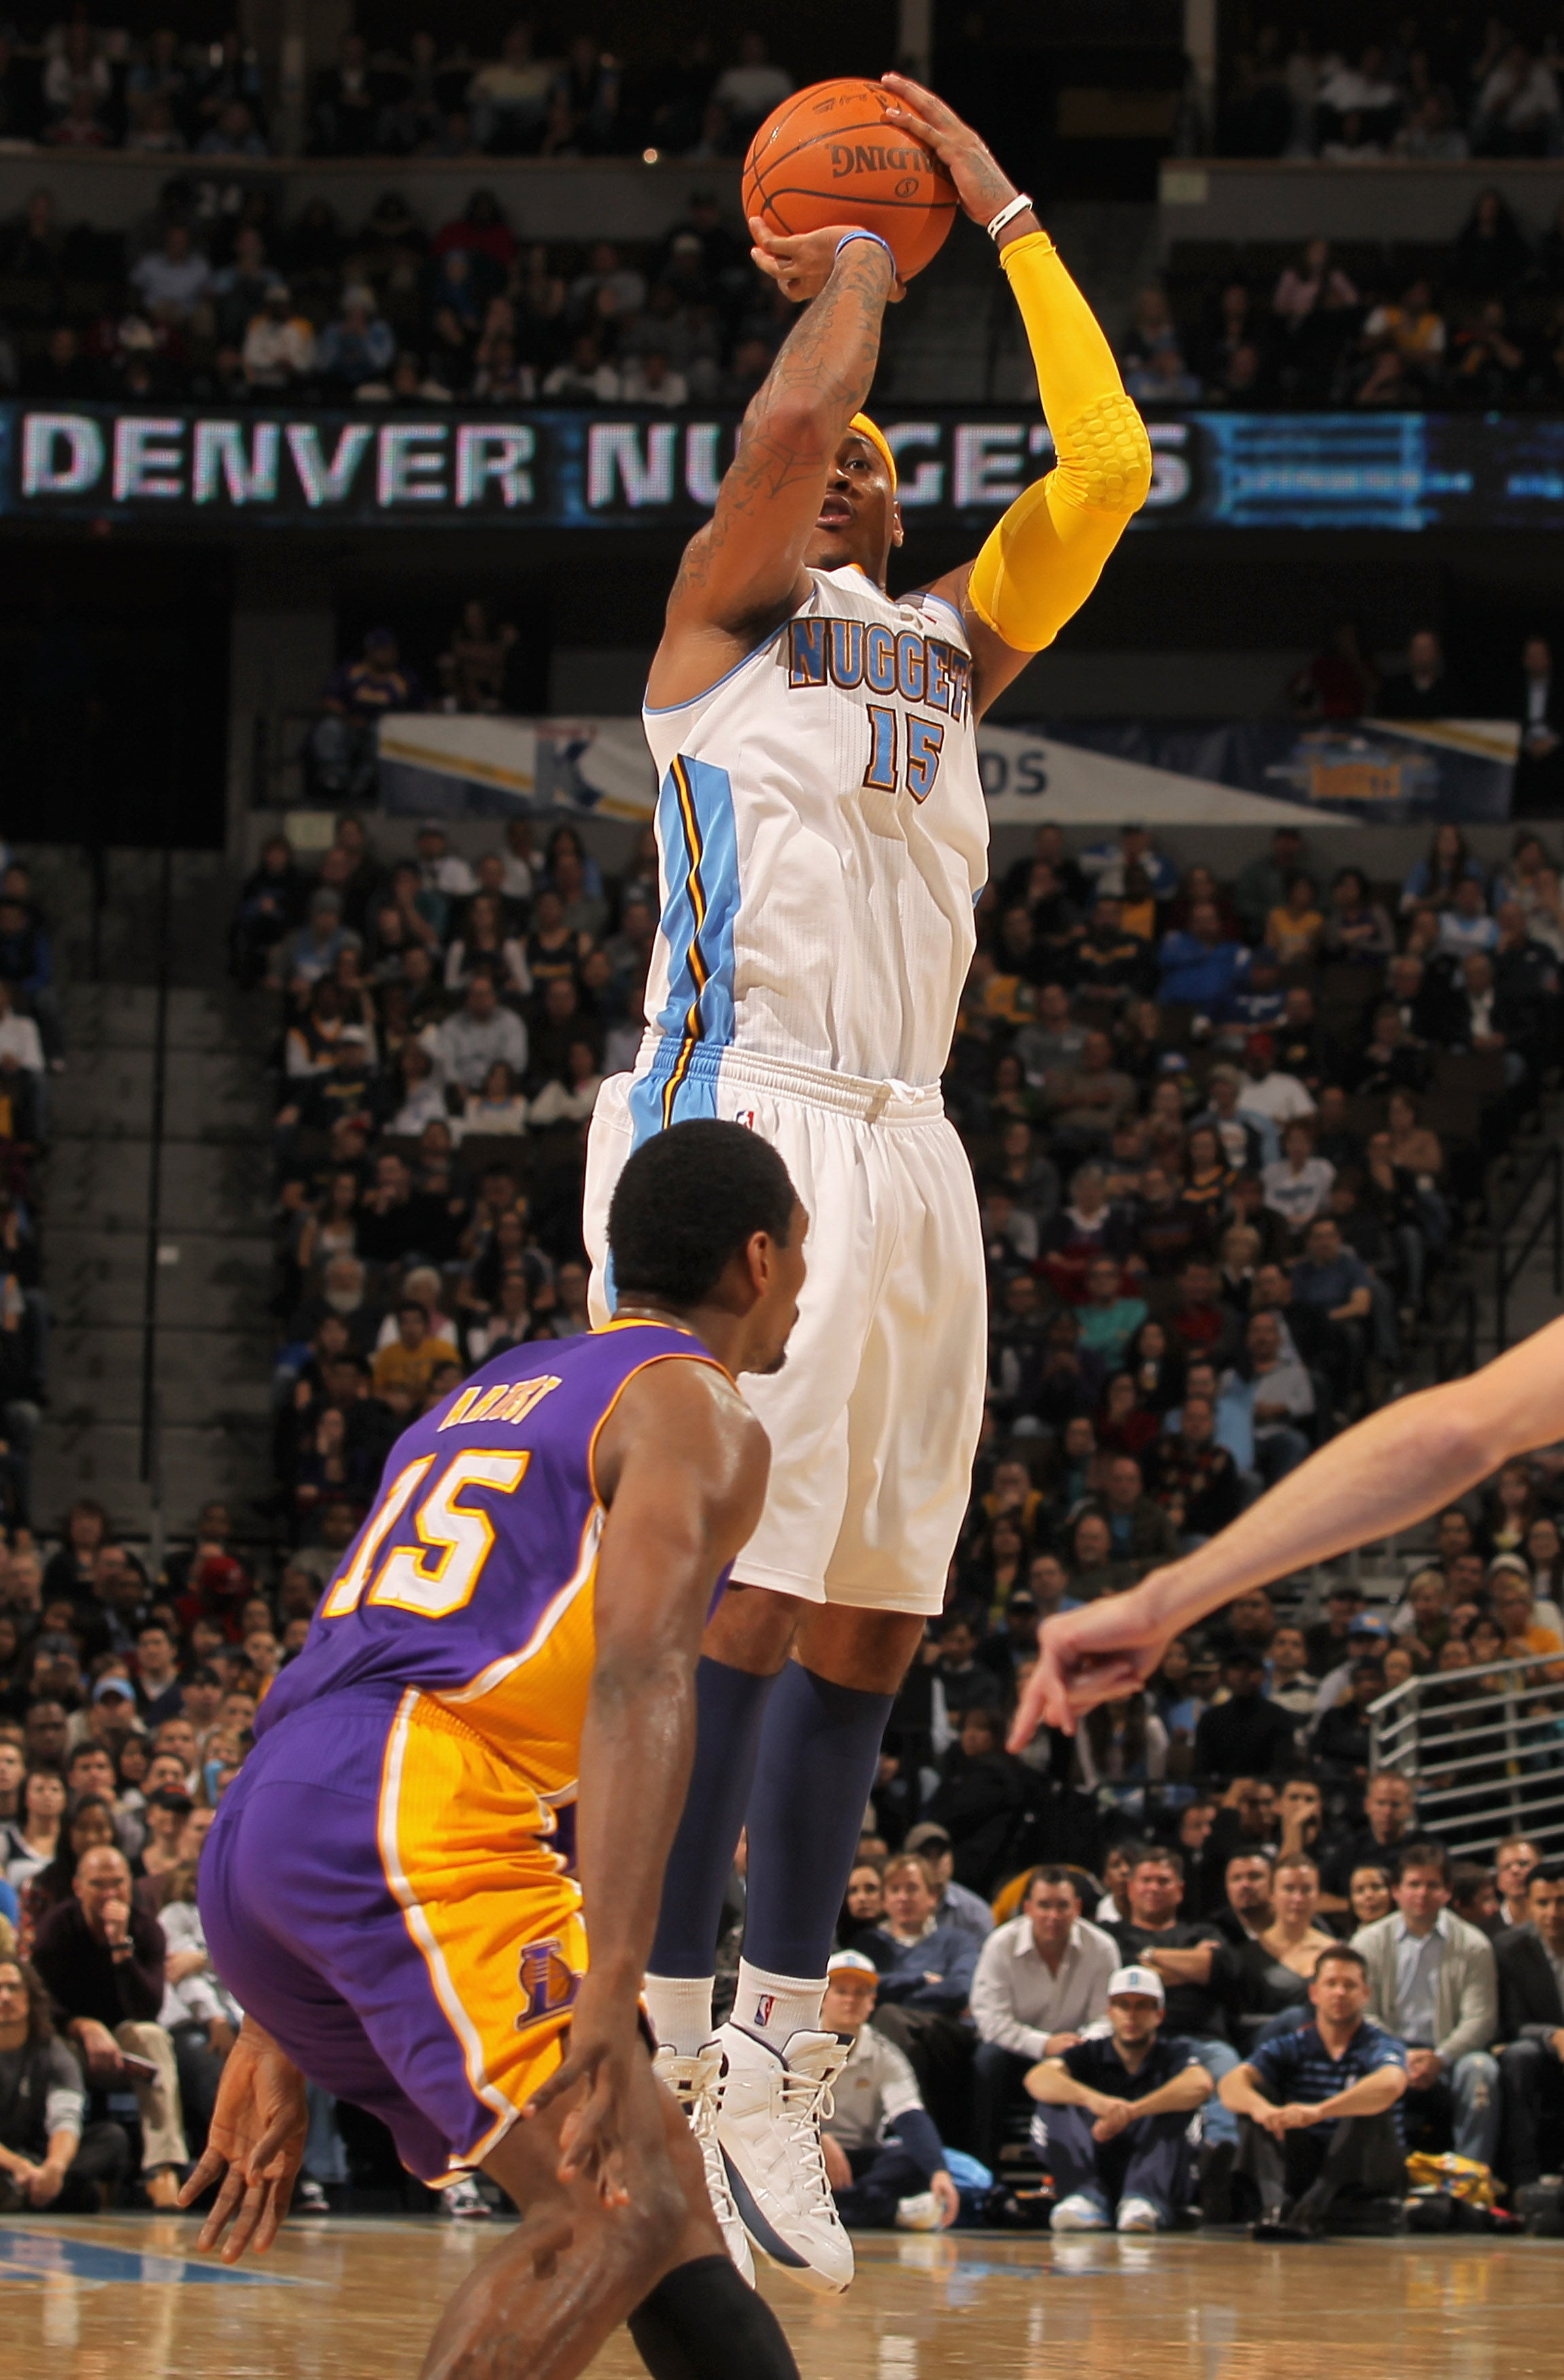 DENVER - NOVEMBER 11:  Carmelo Anthony #15 of the Denver Nuggets takes a shot over Ron Artest #15 of the Los Angeles Lakers at the Pepsi Center on November 11, 2010 in Denver, Colorado. The Nuggets defeated the Lakers 118-112.  NOTE TO USER: User expressl